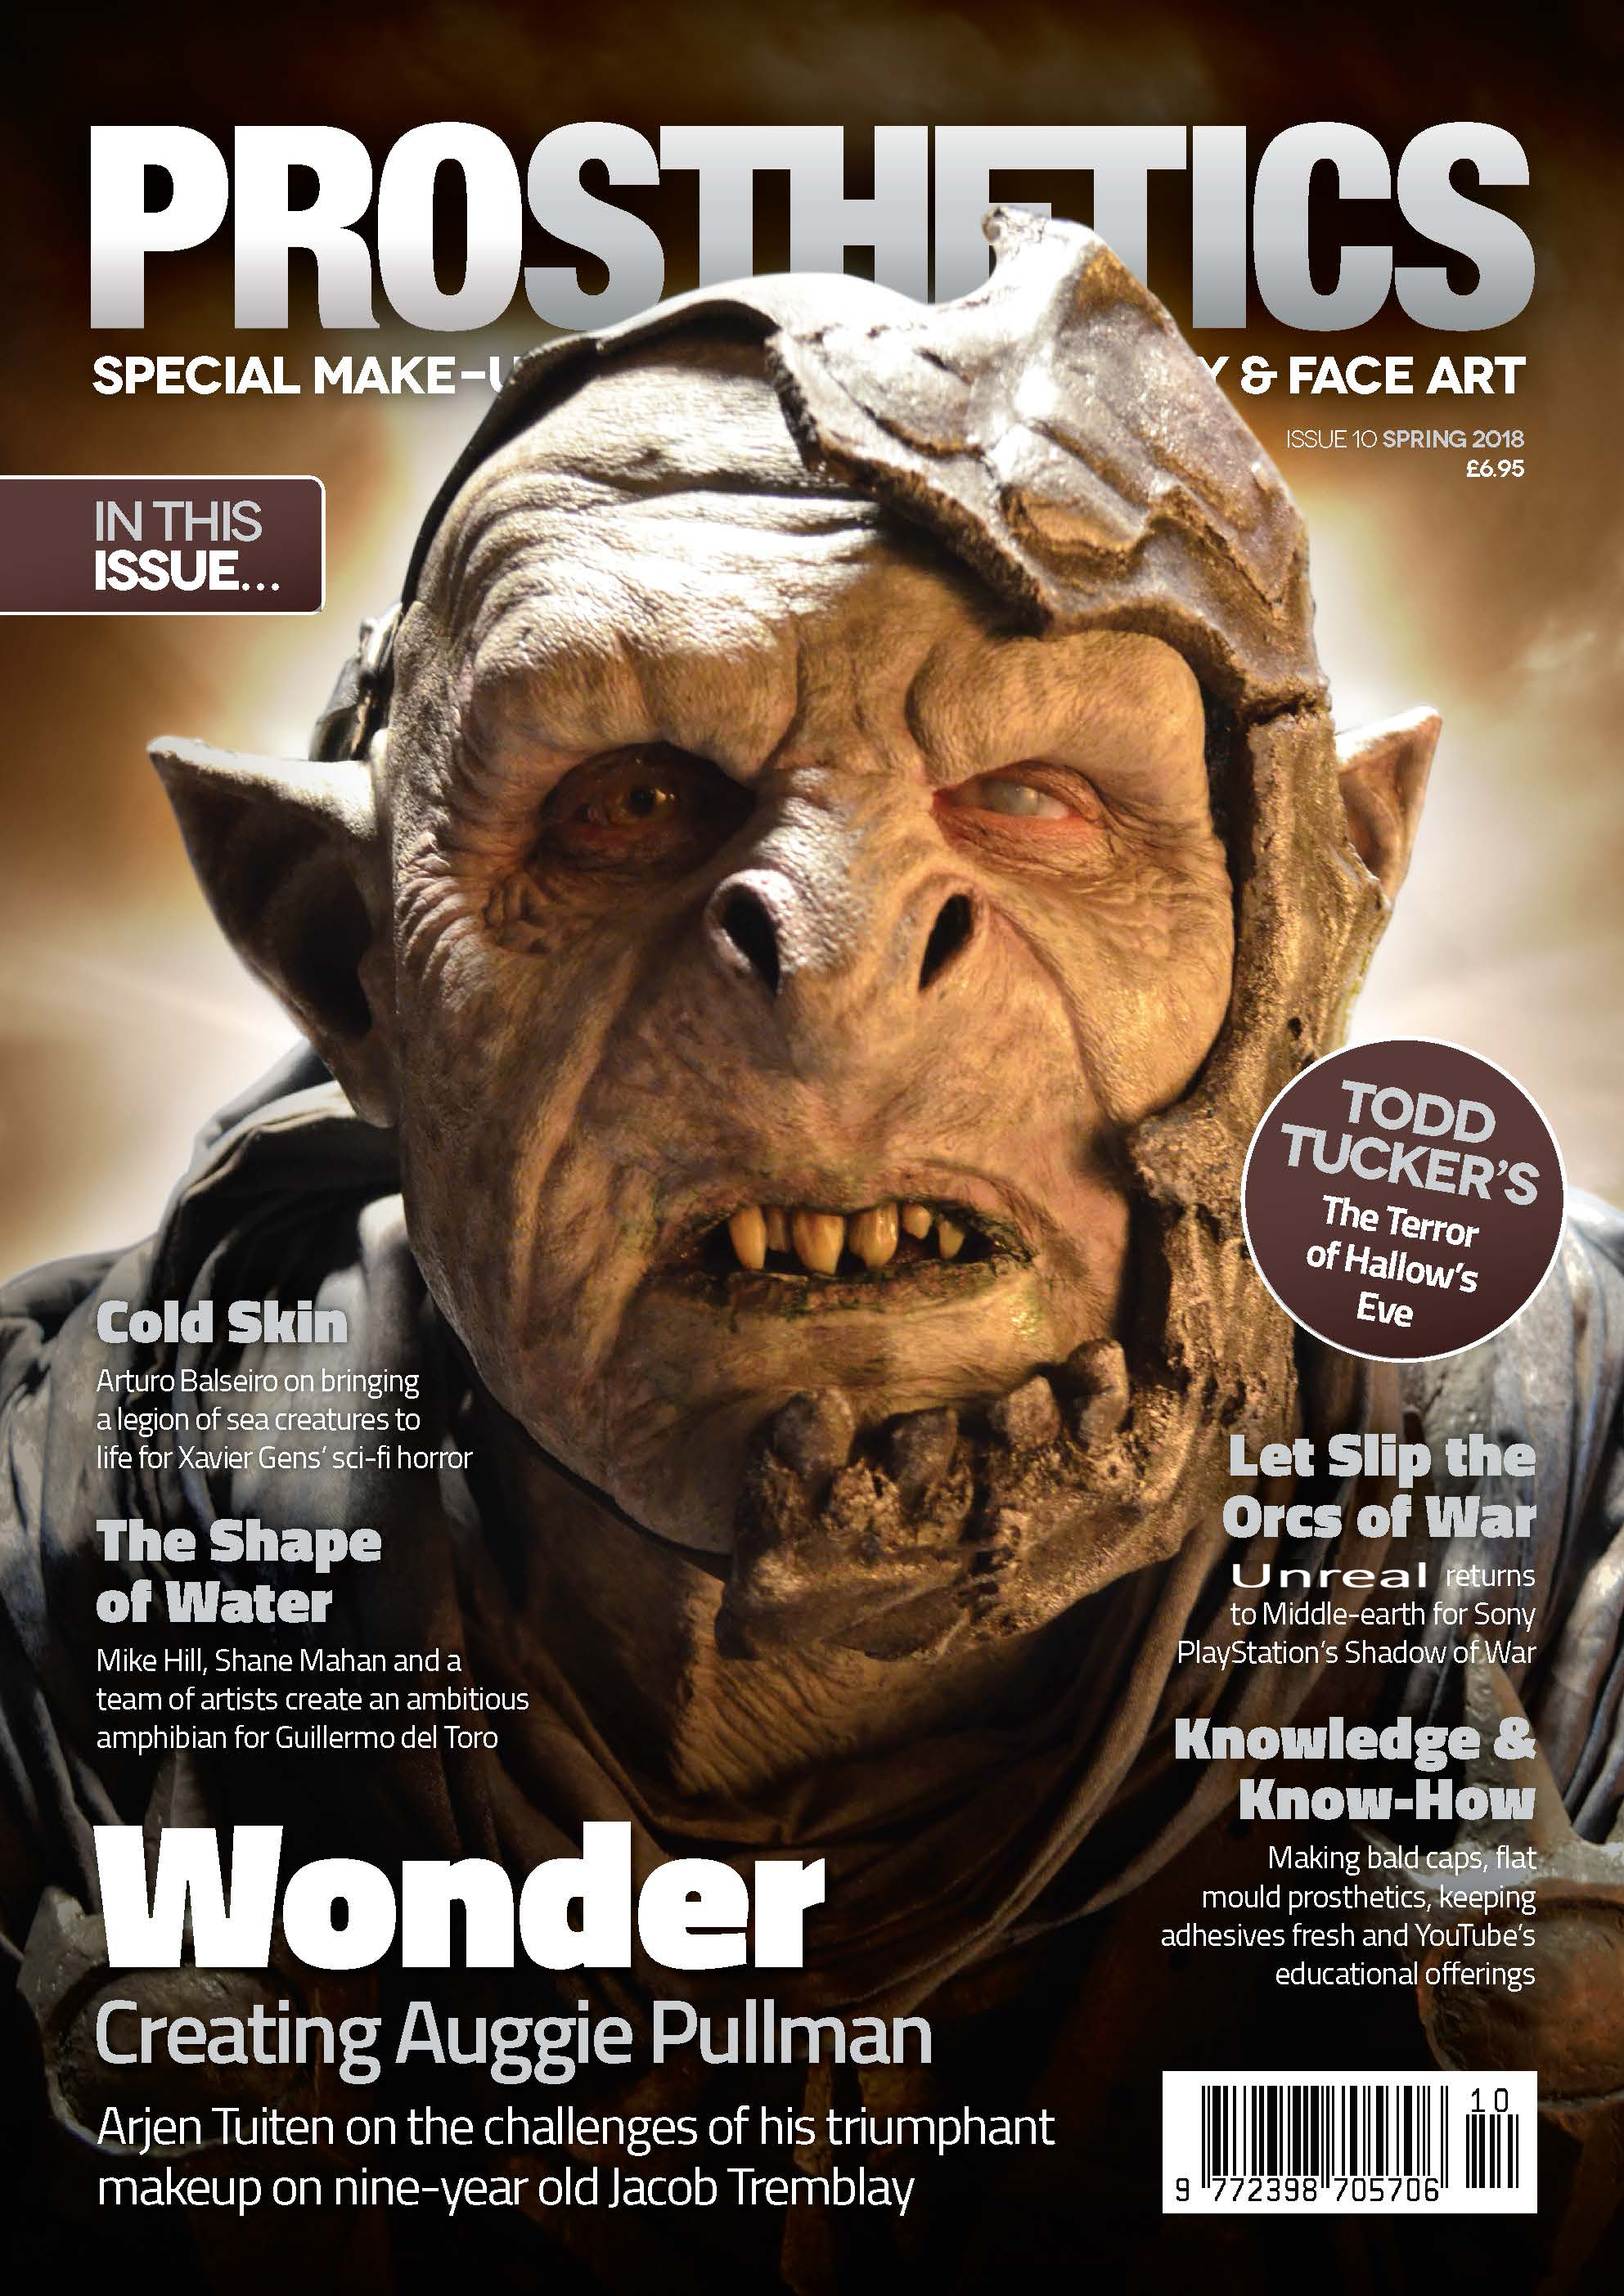 Shadow of War orc MOGG designed and created by Unreal.eu